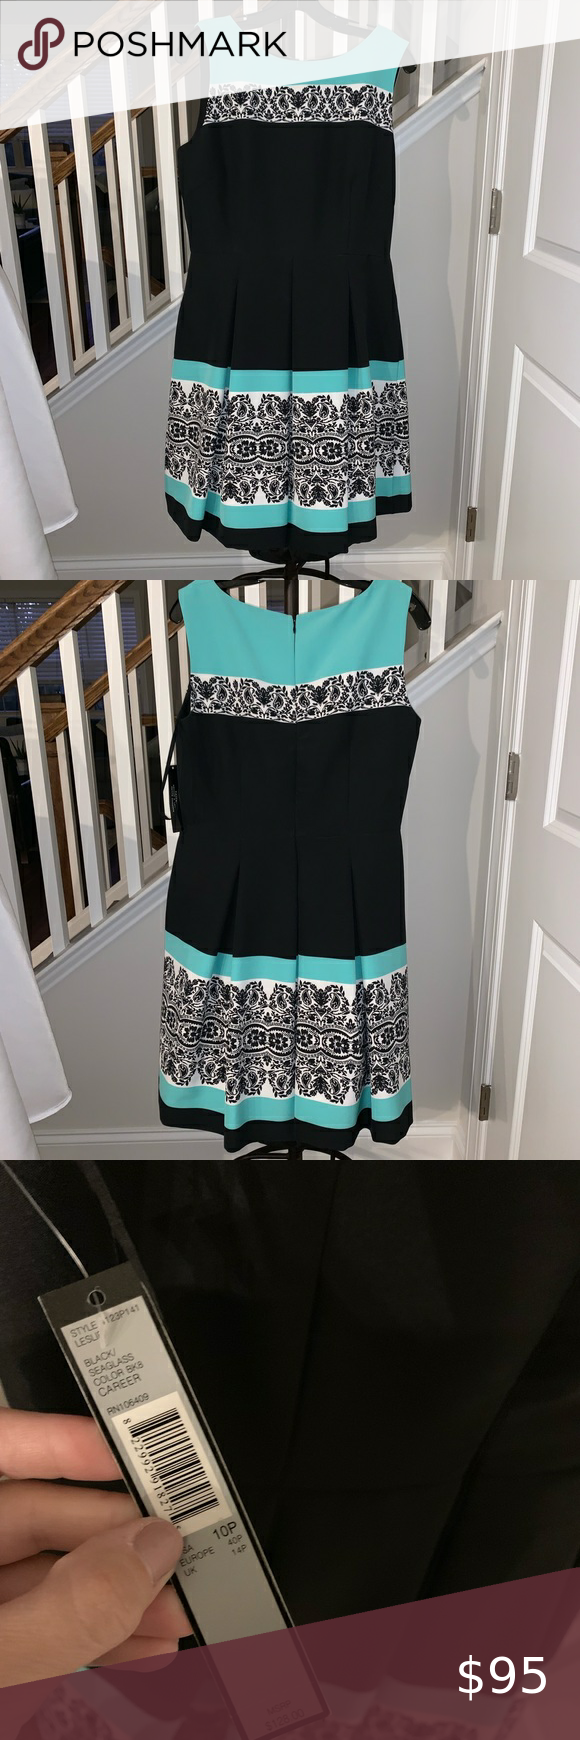 Nwt Tahari Arthur S Levine Cocktail Dress Brand New Dress With Tags Purchased And Can Not Return Never Worn Size Clothes Design Cocktail Dress Dress Brands [ 1740 x 580 Pixel ]